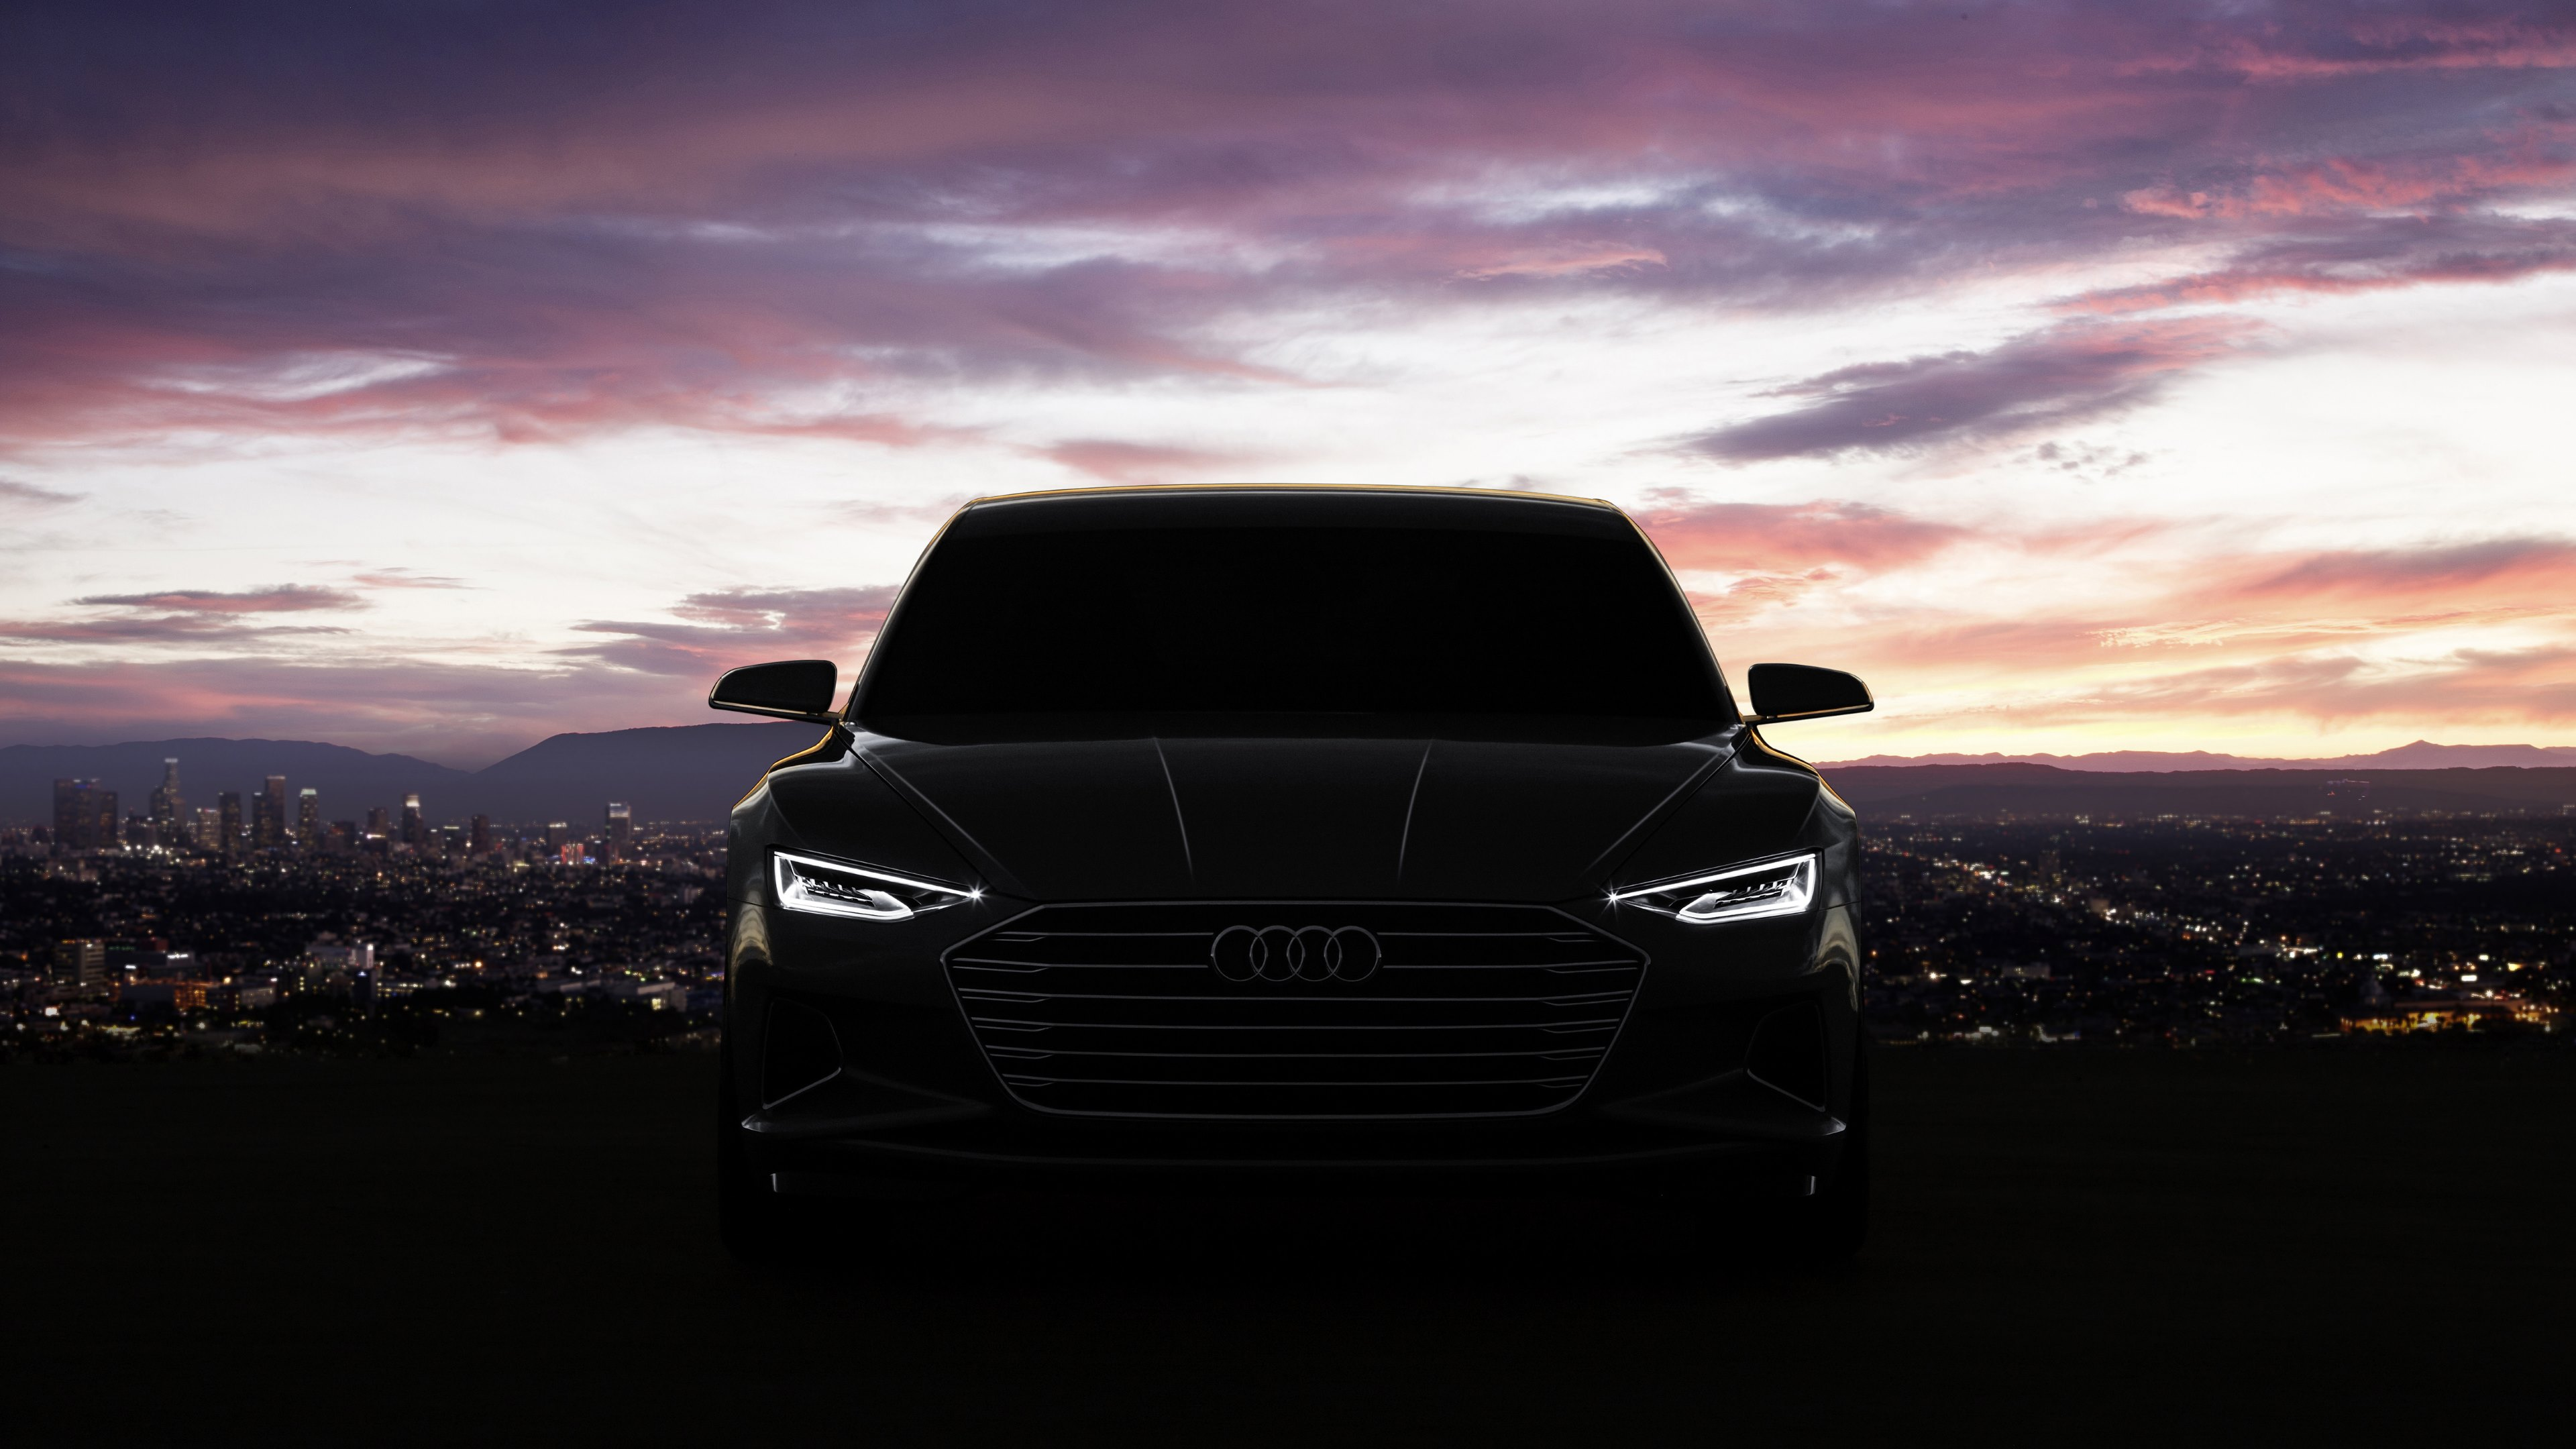 Audi 4k Wallpaper Wallpapersafari